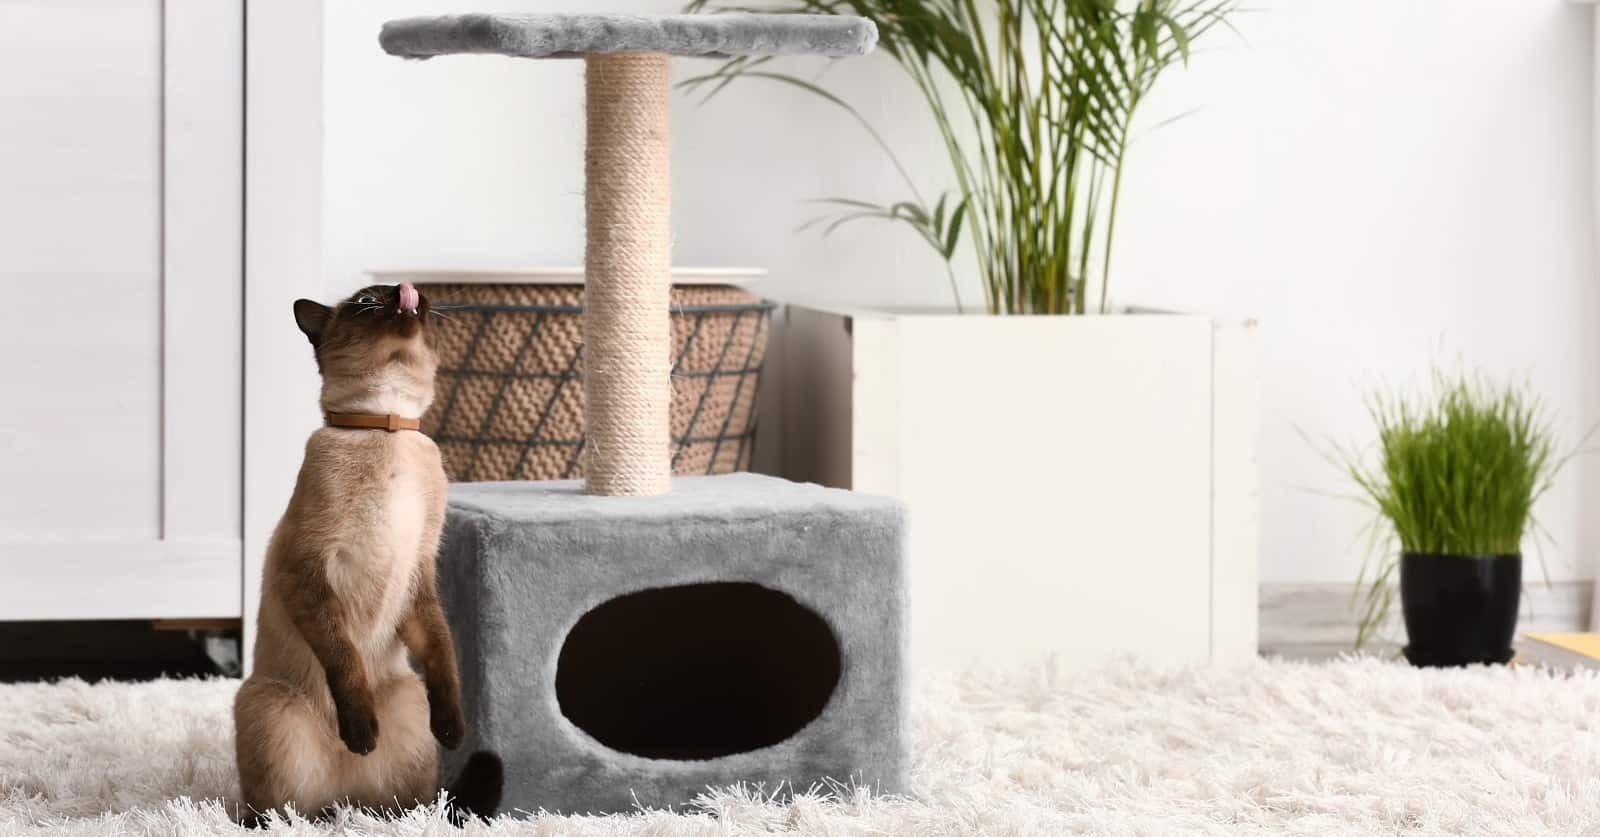 Feeling frustrated because your cat ignores their cat tree after you spent so much money on it? Check out our guide on what to do!